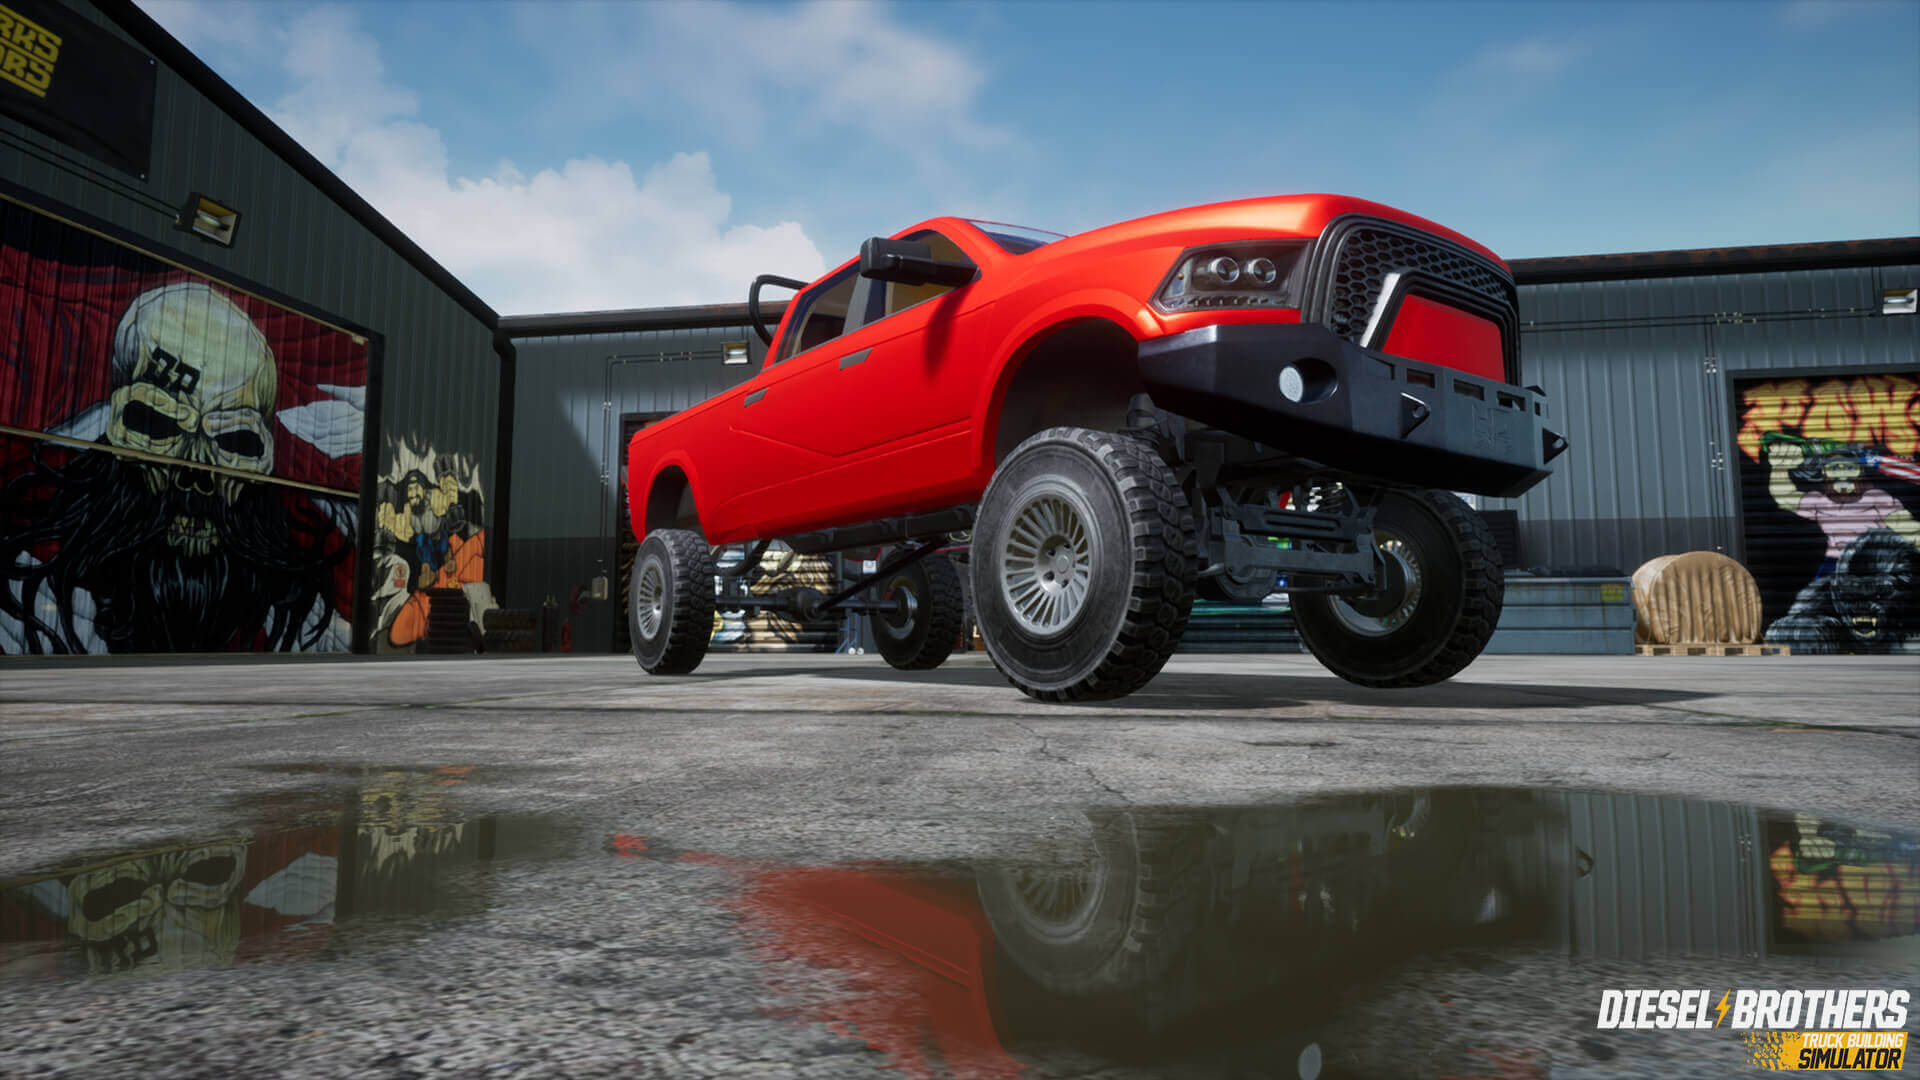 Play Diesel Brothers Truck Building Simulator Editor for free